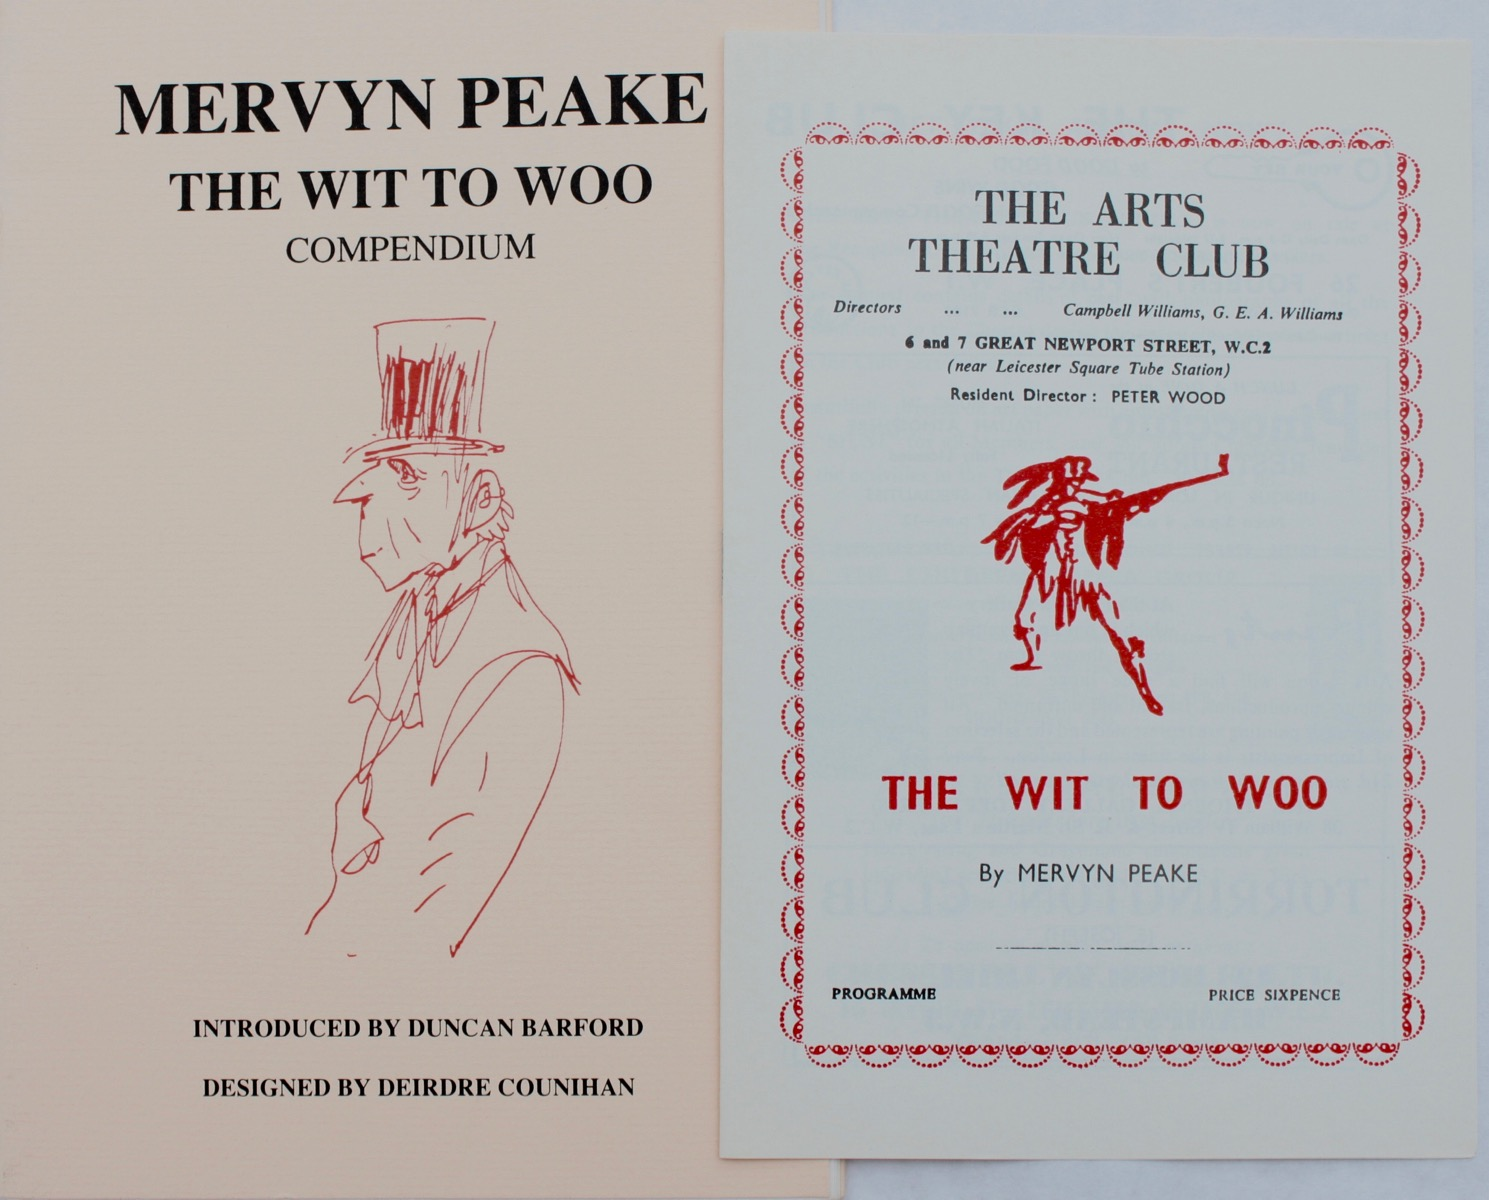 Image for Number 25. The Wit to Woo Compendium. Introduction by Duncan Bardorf; designed by Deidre Counihan